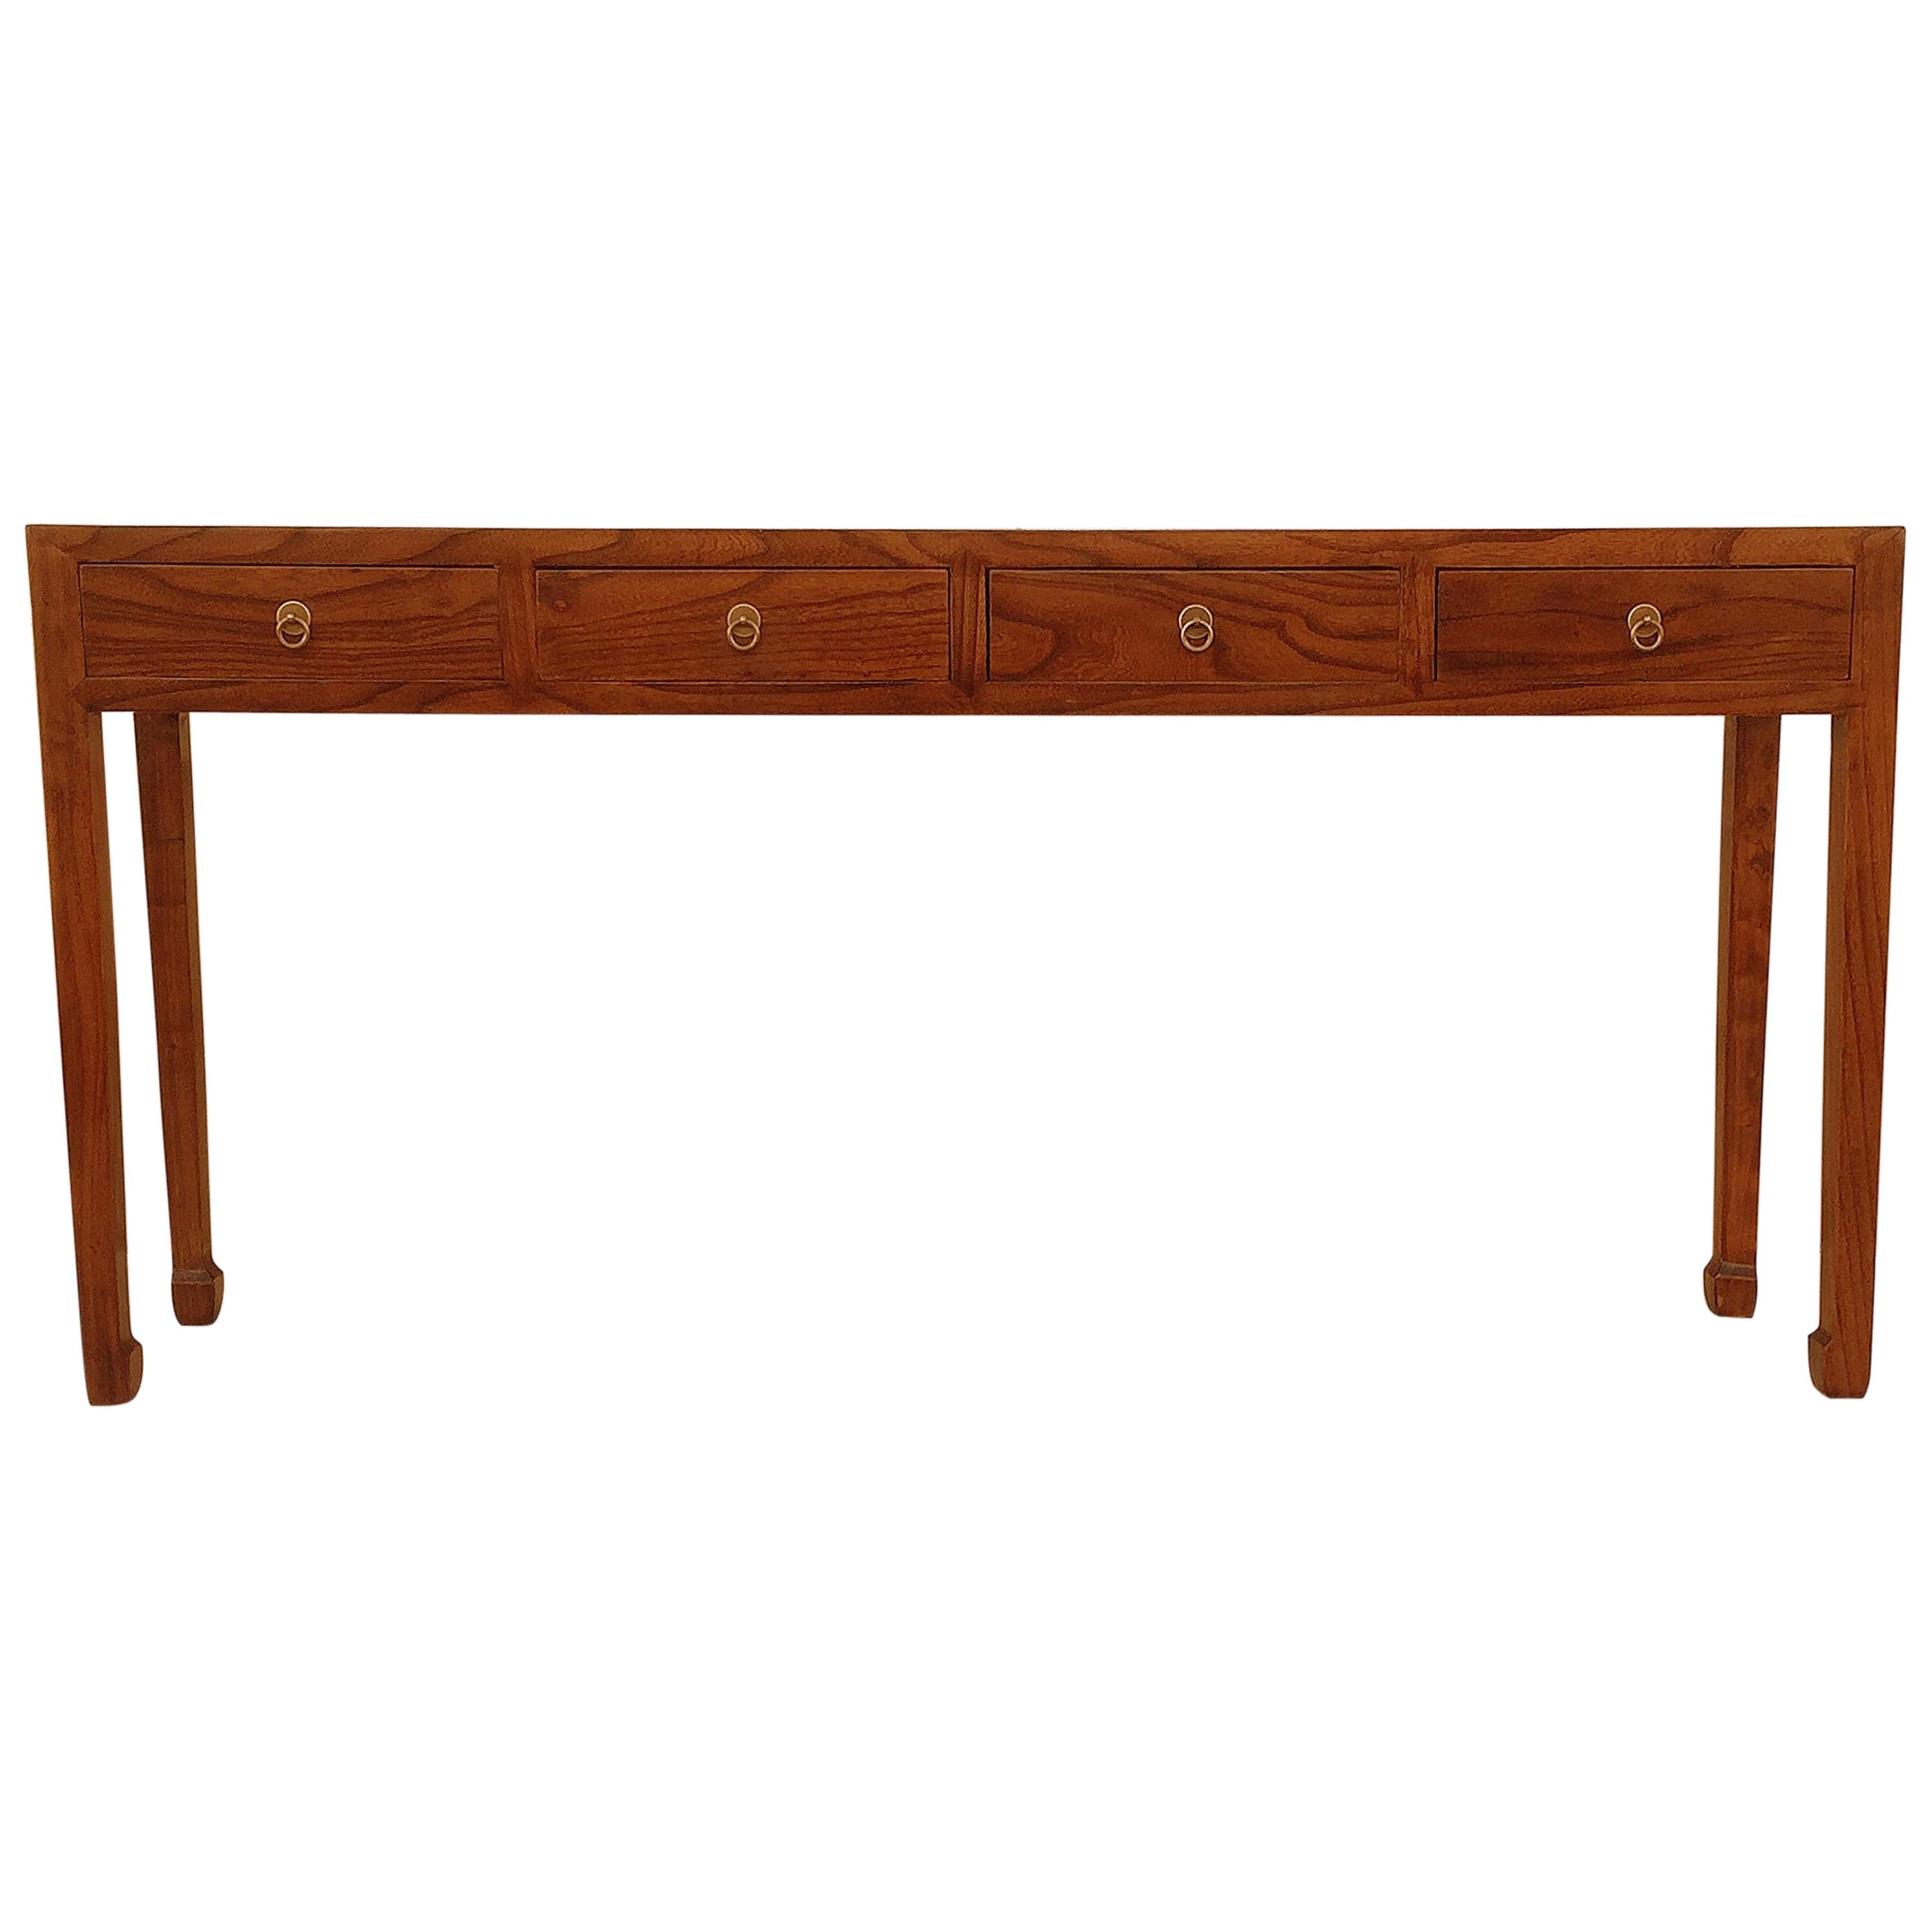 Fine Jumu Console Table with Drawers